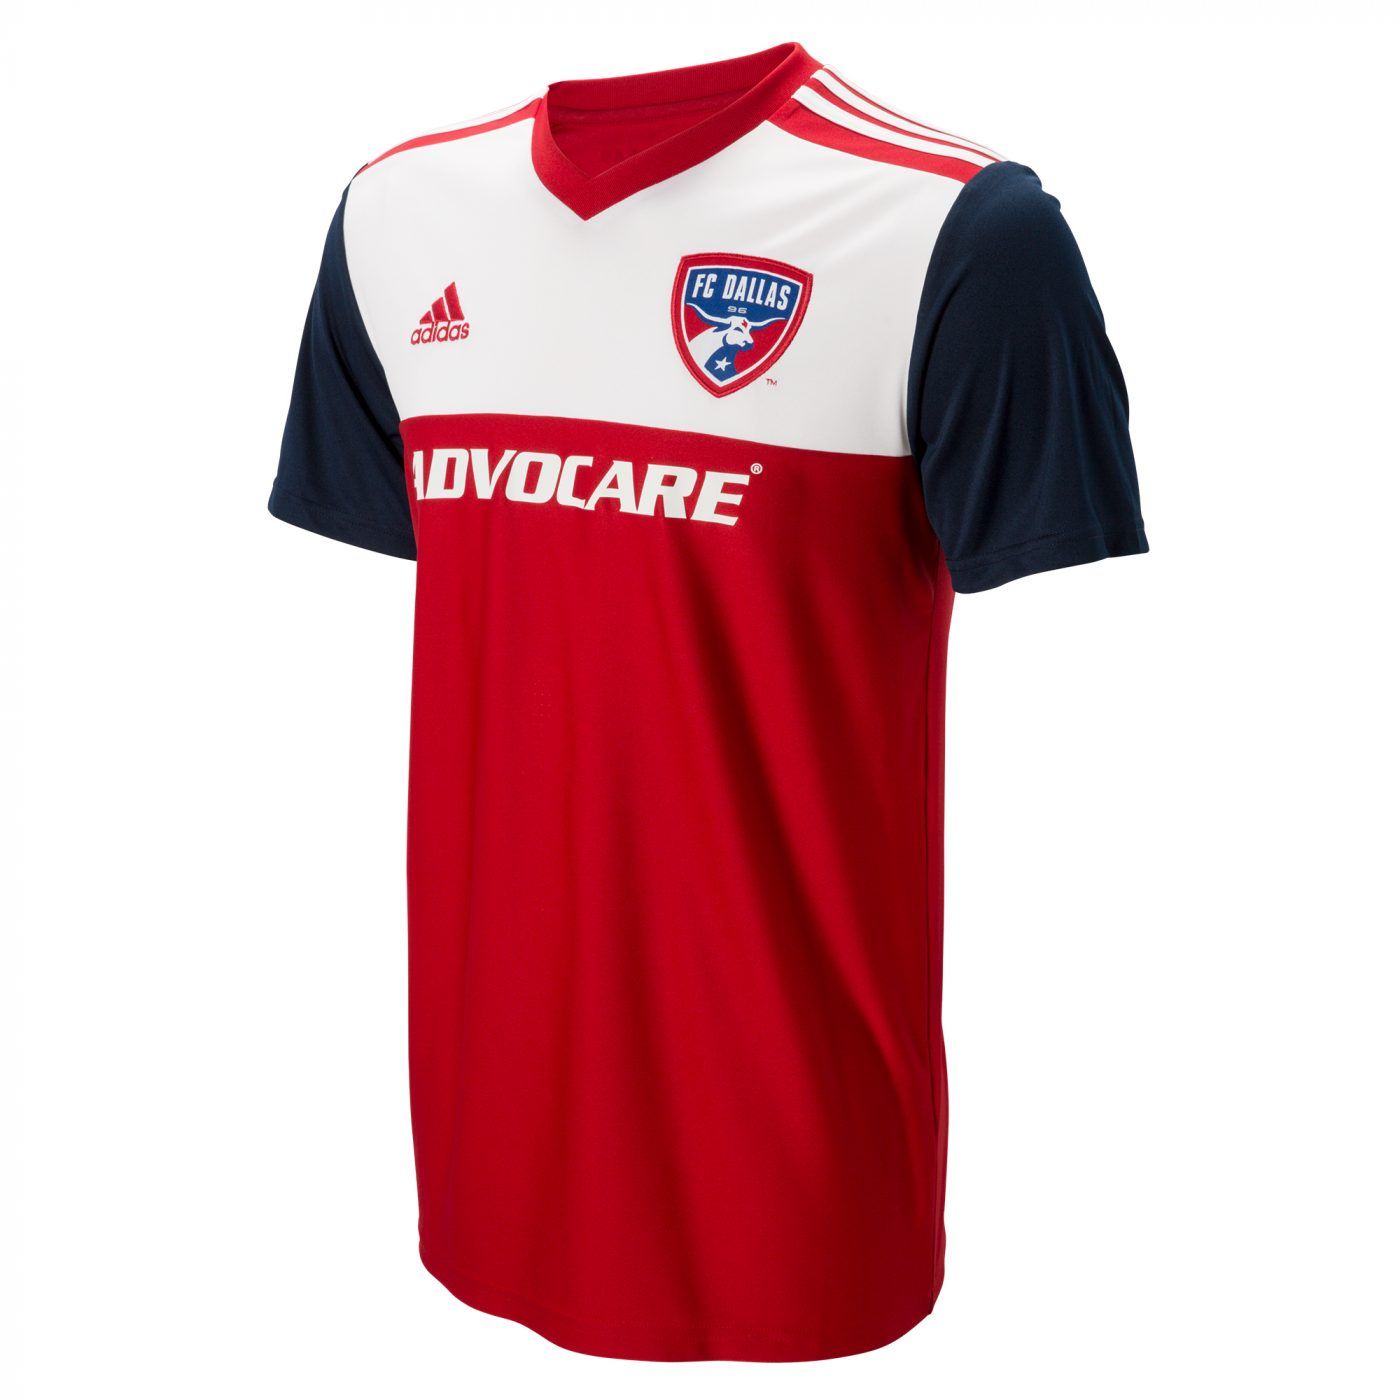 wp contentuploads201902maillot fc dallas domicile 2018 mls 1400x1400.jpeg